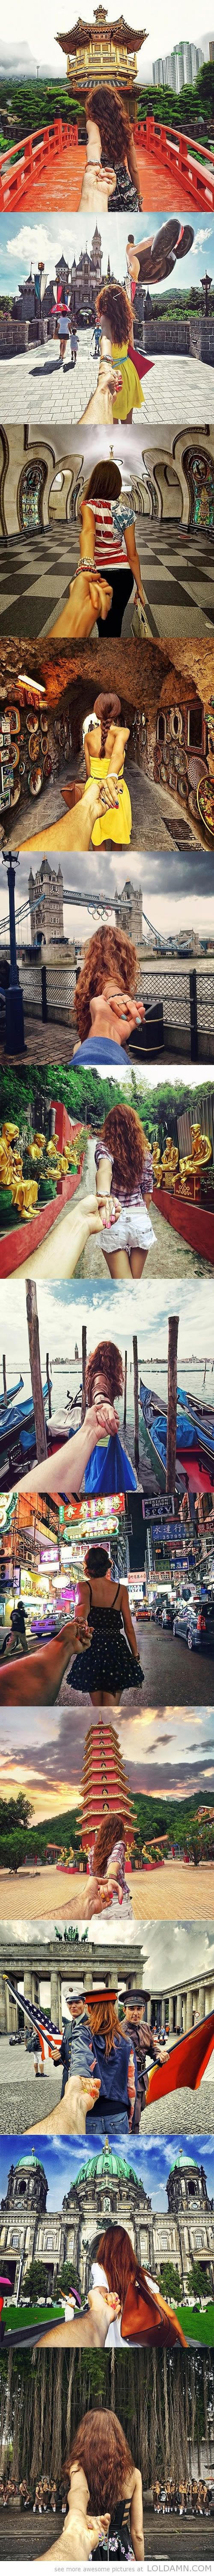 Photographer's girlfriend leads him around the world. Aka: probably the cutest thing ever